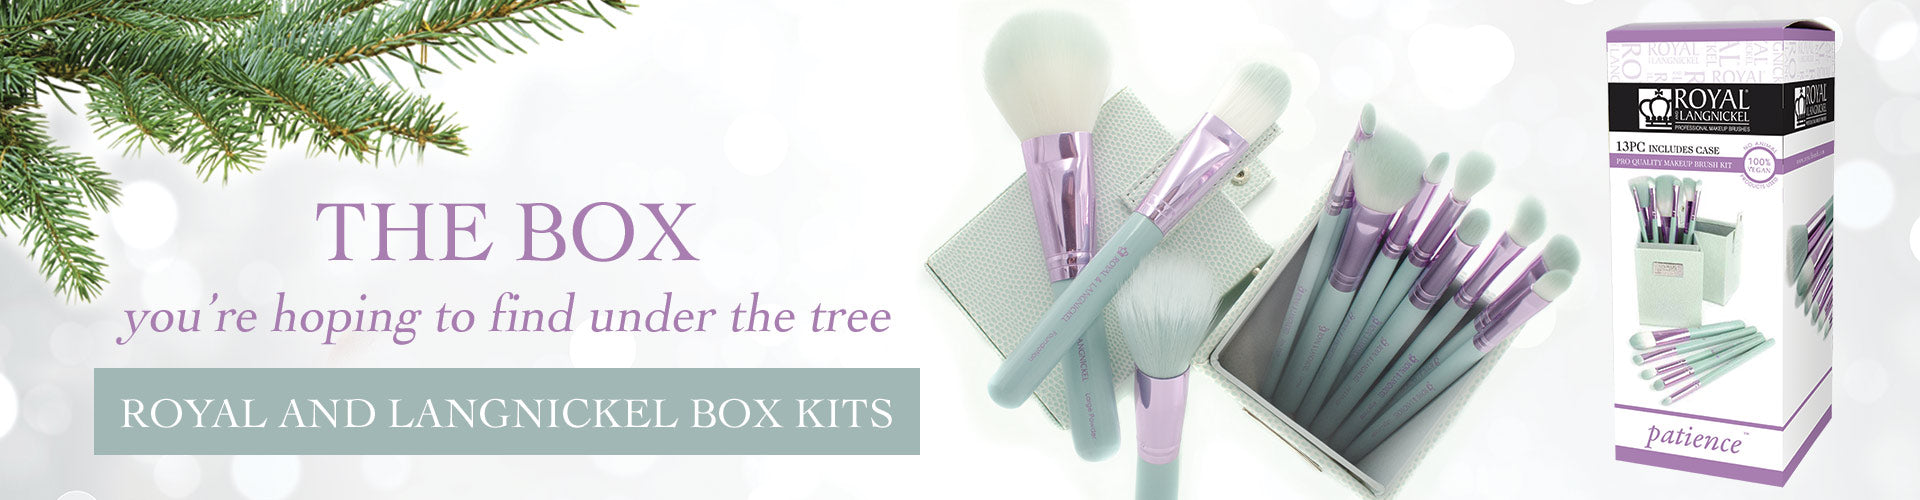 The Box you're hoping to find under the tree - R&L Box Kits